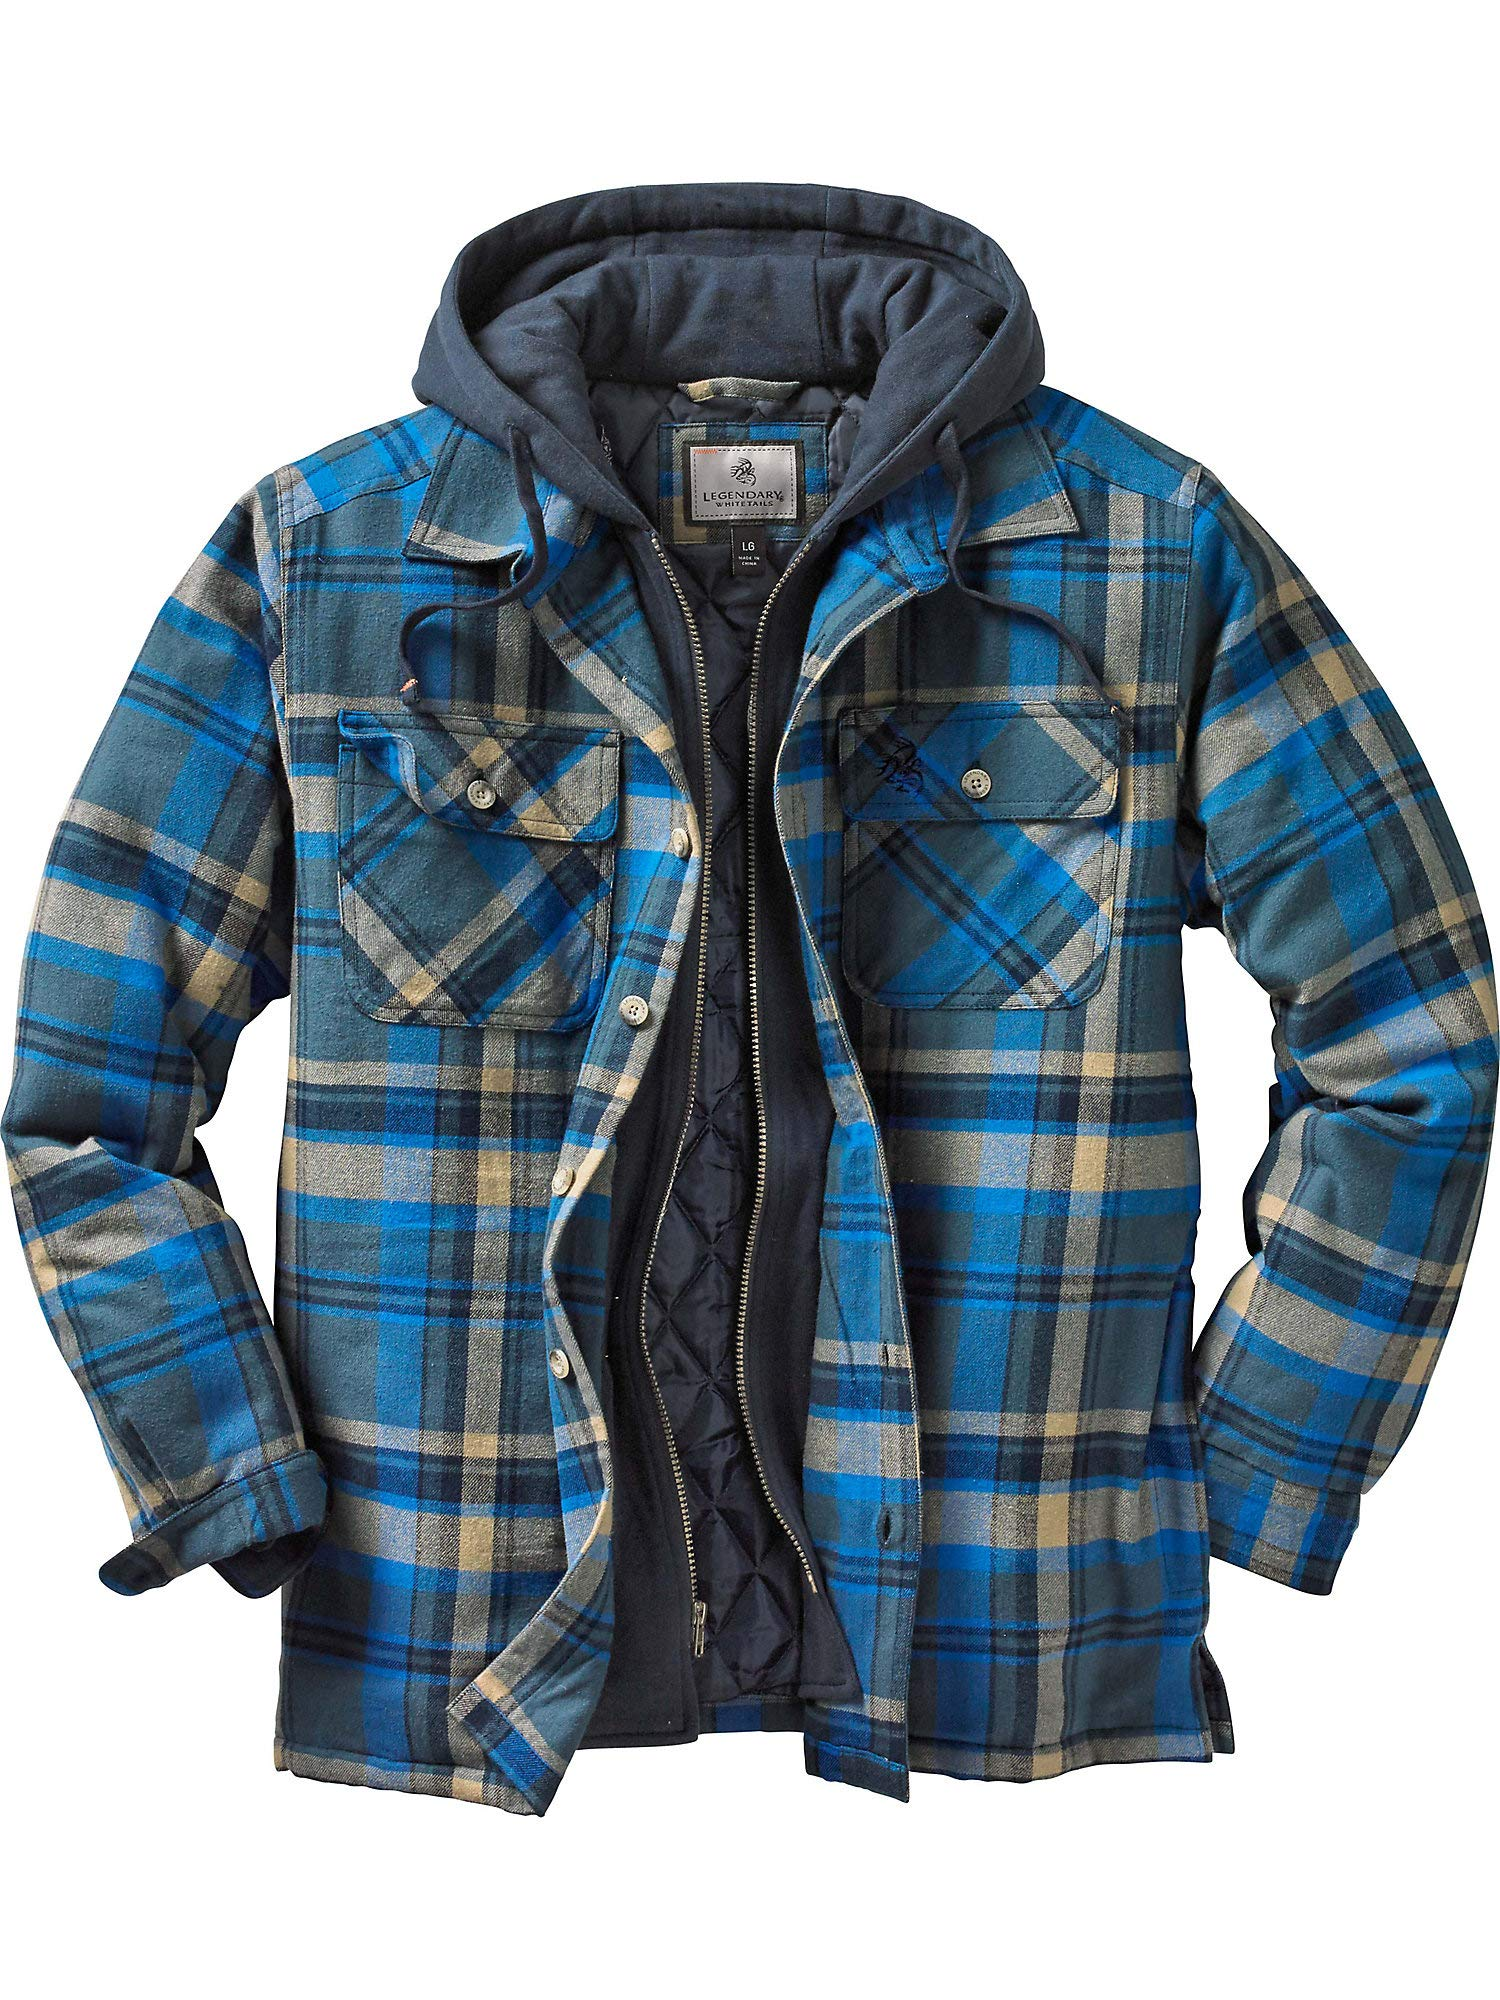 Legendary Whitetails Maplewood Hooded Shirt Jacket, Slate Hatchet Plaid, XXXXX-Large by Legendary Whitetails